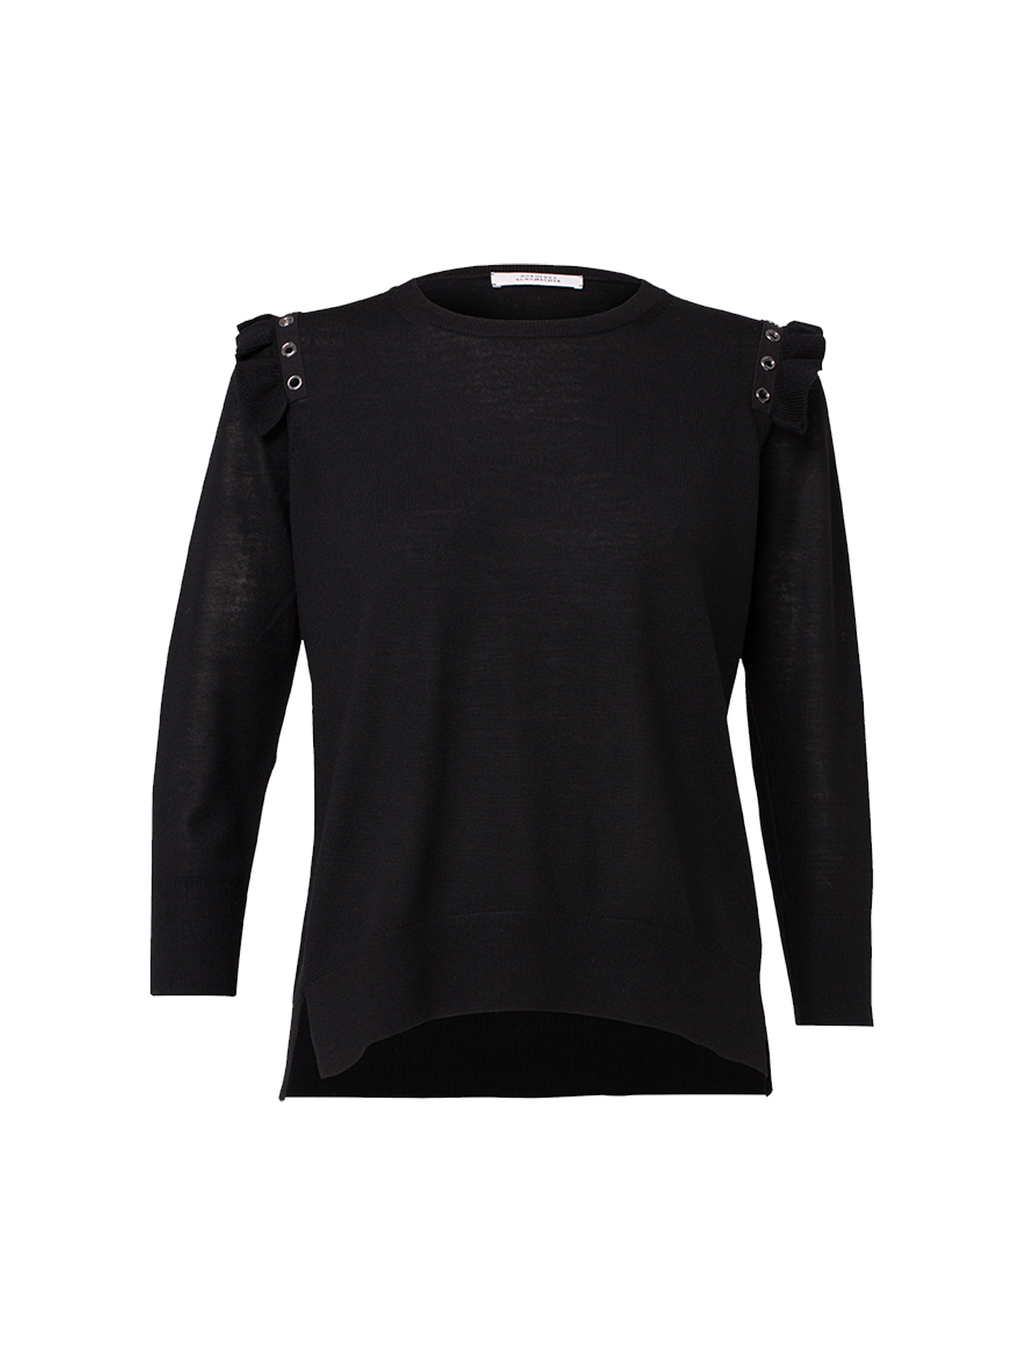 Dorothee Schumacher Tough Femininity O-Neck Pullover Sweater